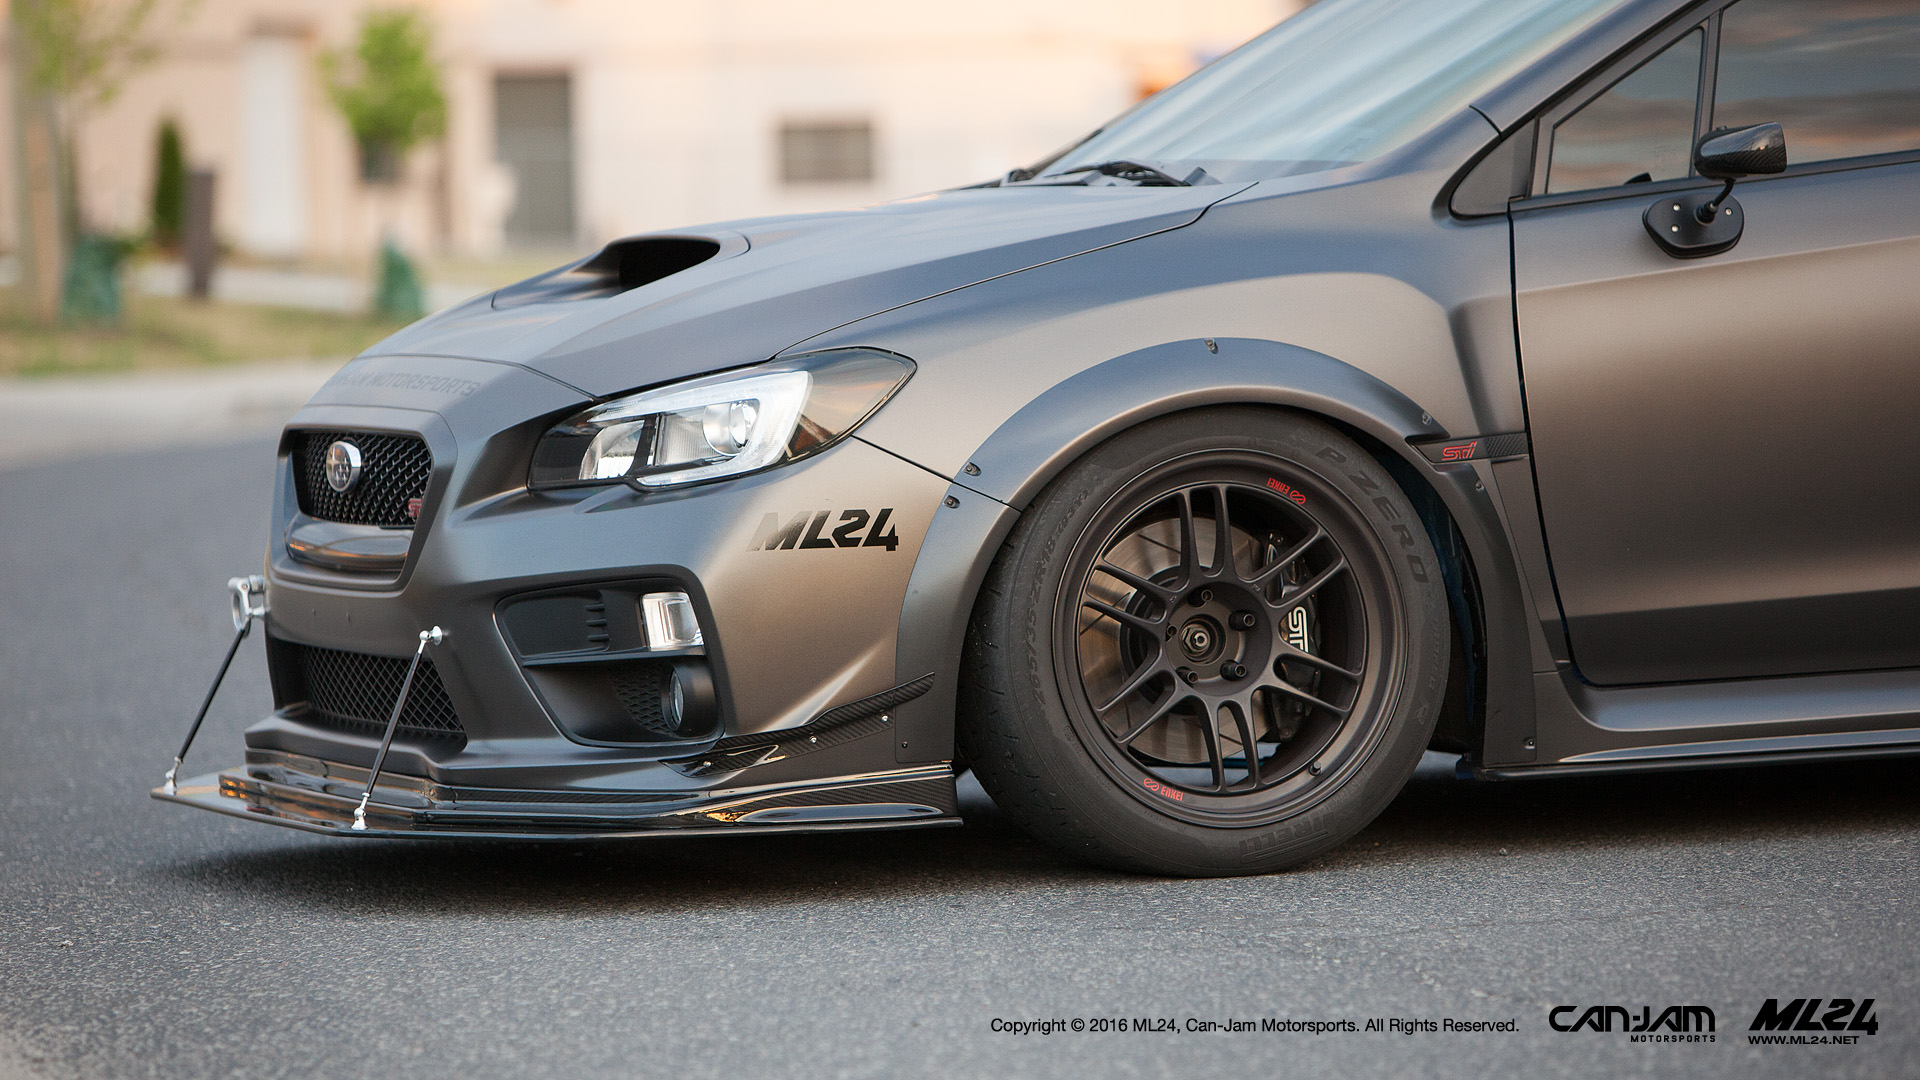 For Sale as well 2015 subaru wrx sti wide body fender flares besides 2015 Chevrolet Corvette Z06 Coupe Photo 638397 in addition Lb Performance Chrysler 300c together with Back Tattoos Quotes Women. on eclipse wide fender flares